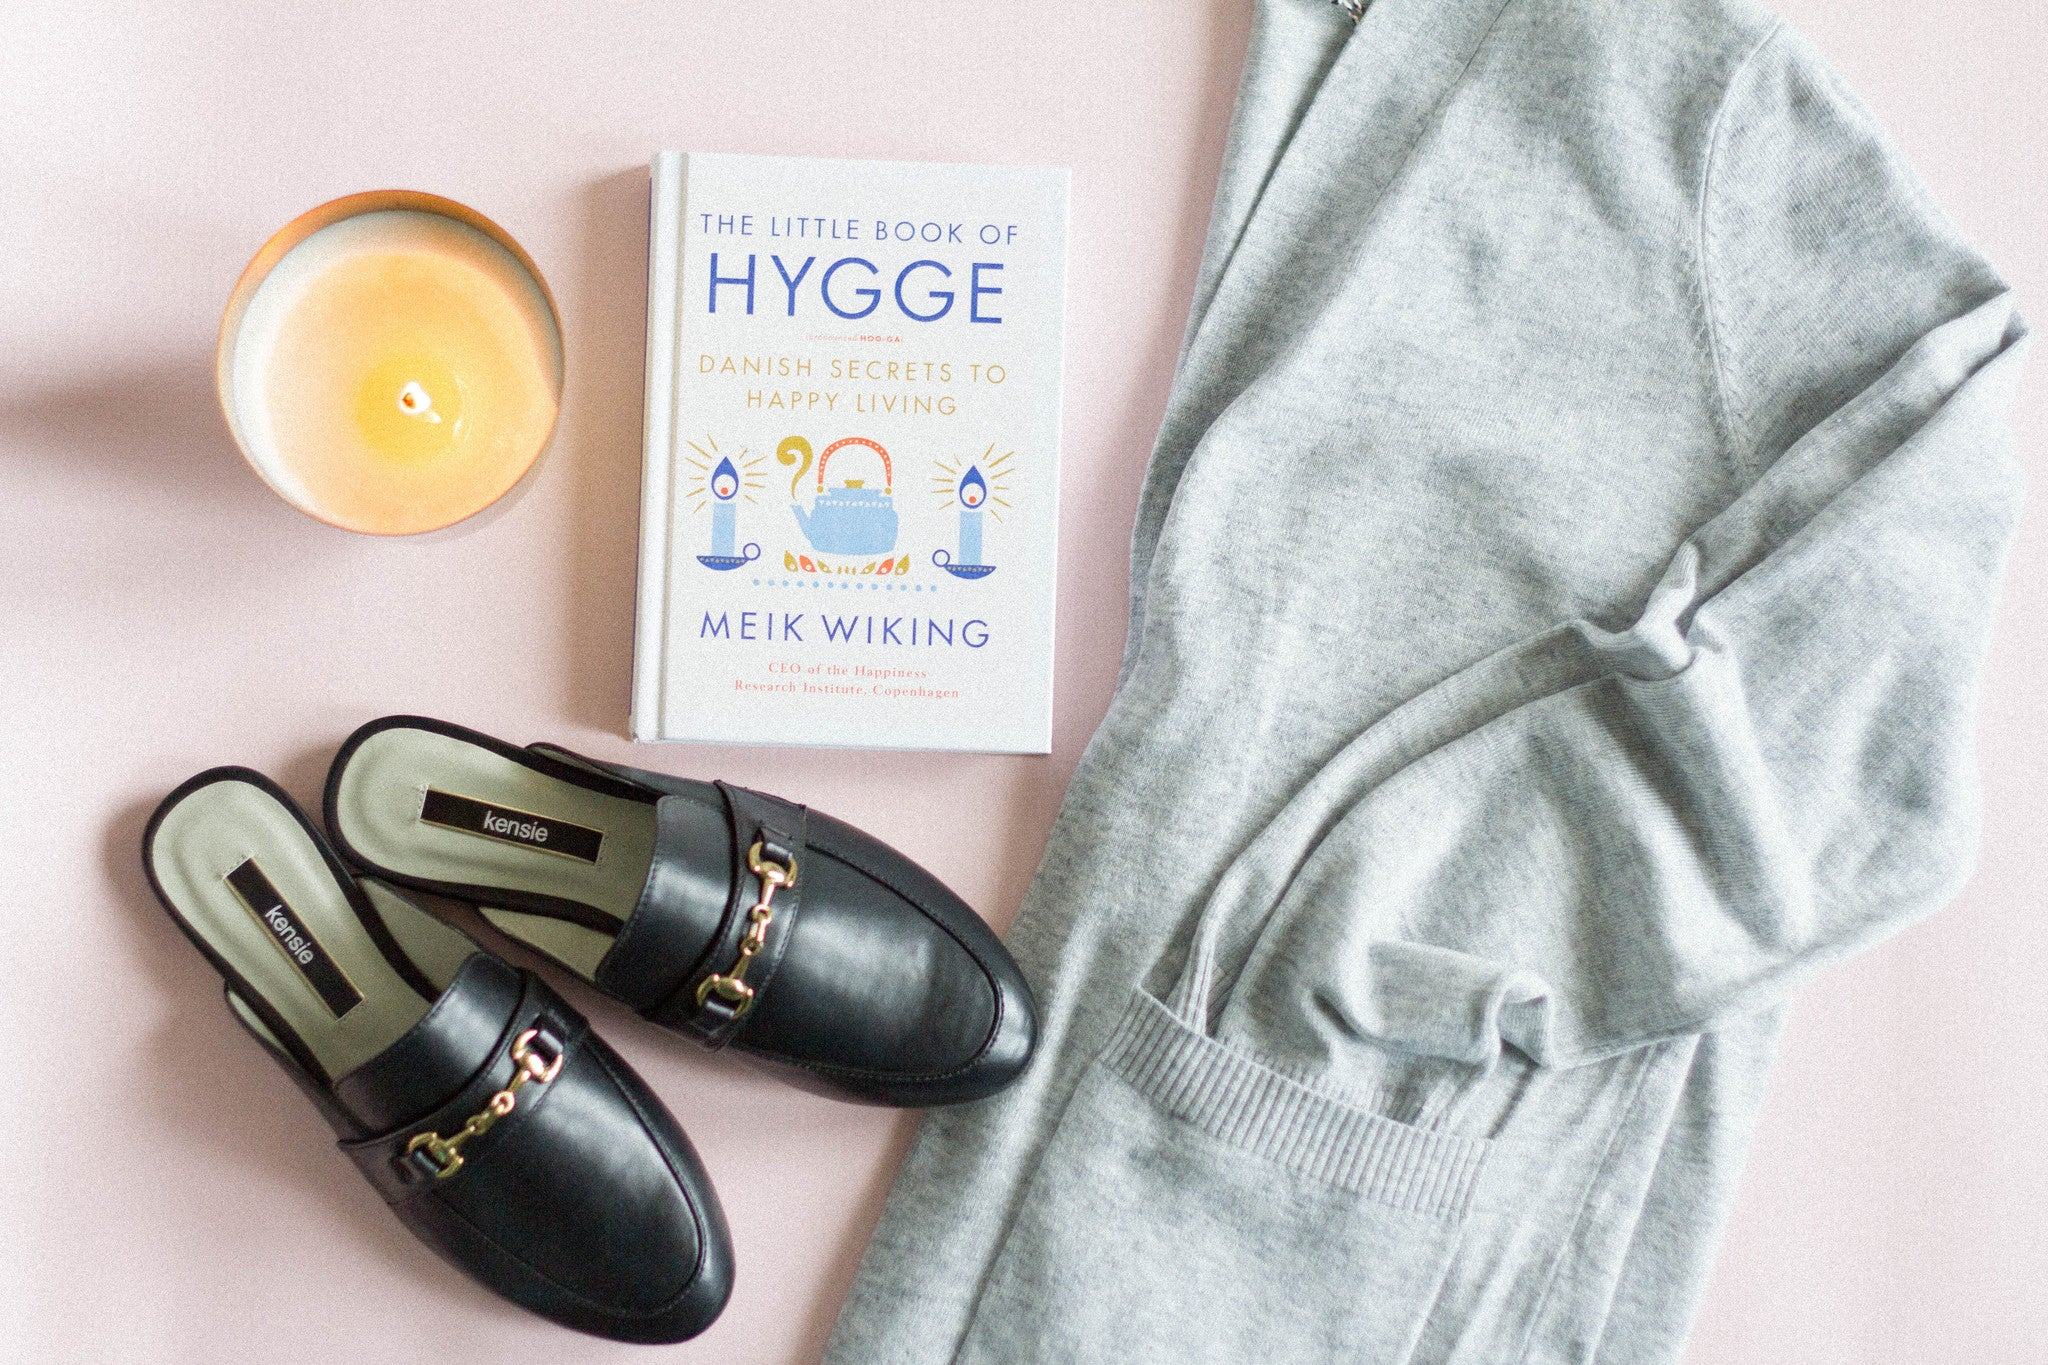 Hygge: Living a Happier, Cozier Life Inside & Out